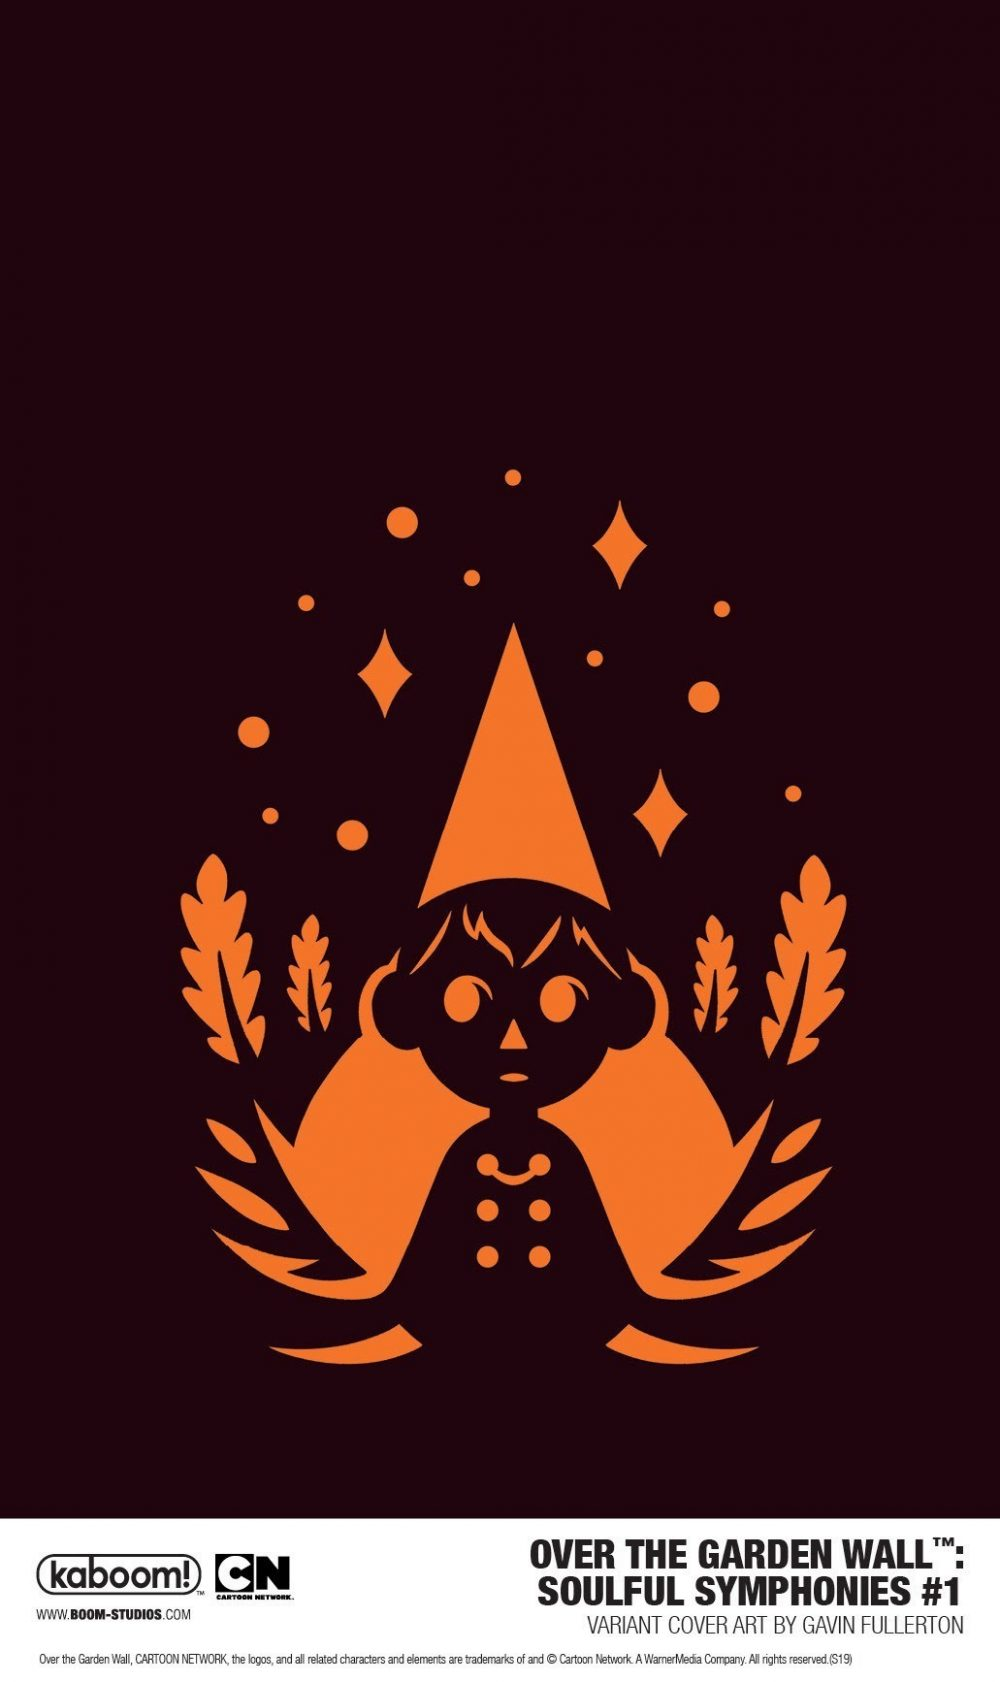 Over the Garden Wall: Soulful Symphonies, variant cover di Gavin Fullerton